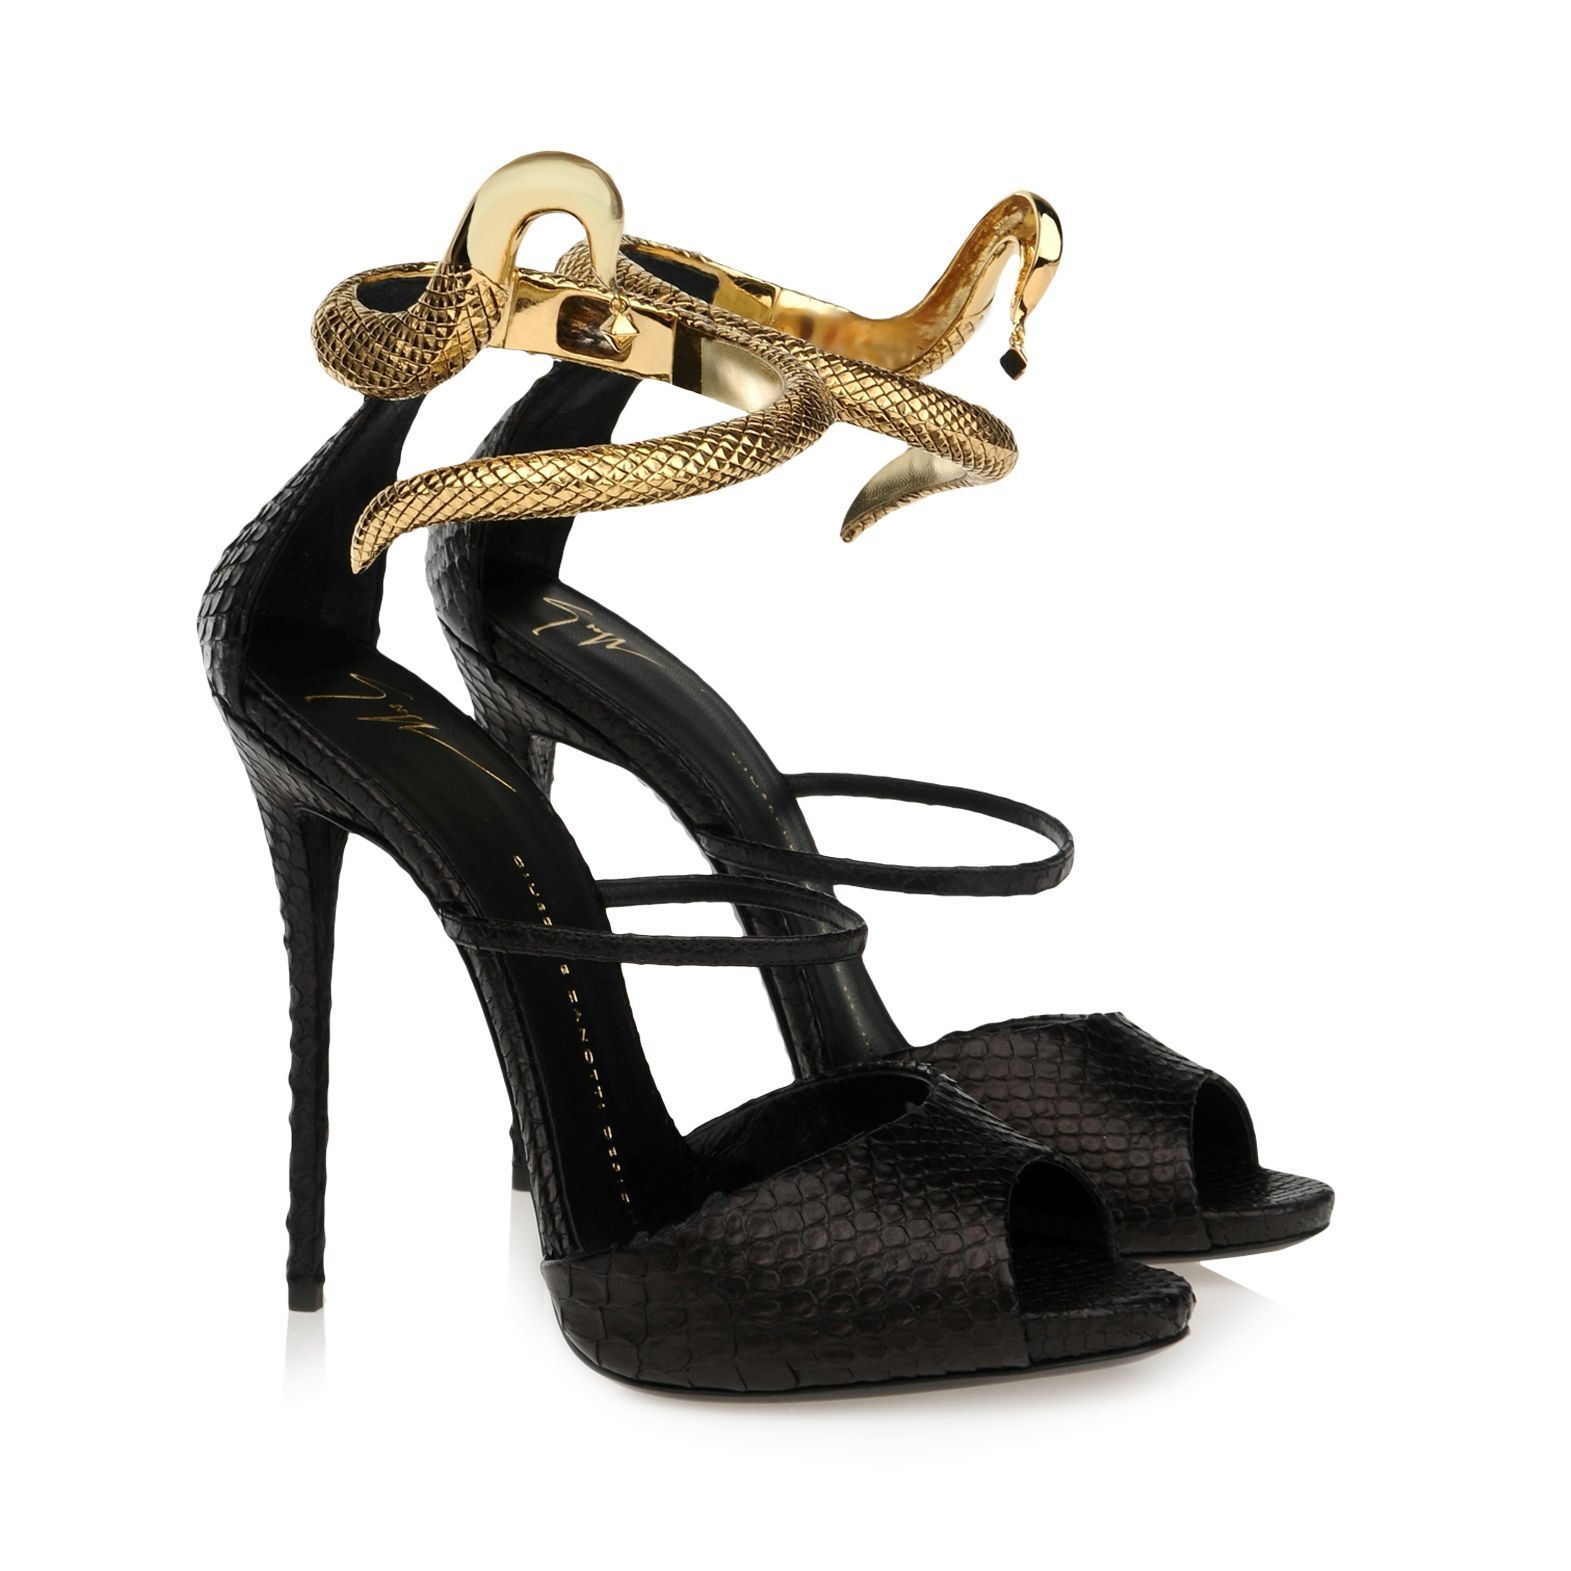 Sandals - Shoes Giuseppe Zanotti Design Women on Giuseppe Zanotti Design  Online Store Nation - Spring-Summer collection for men and women.